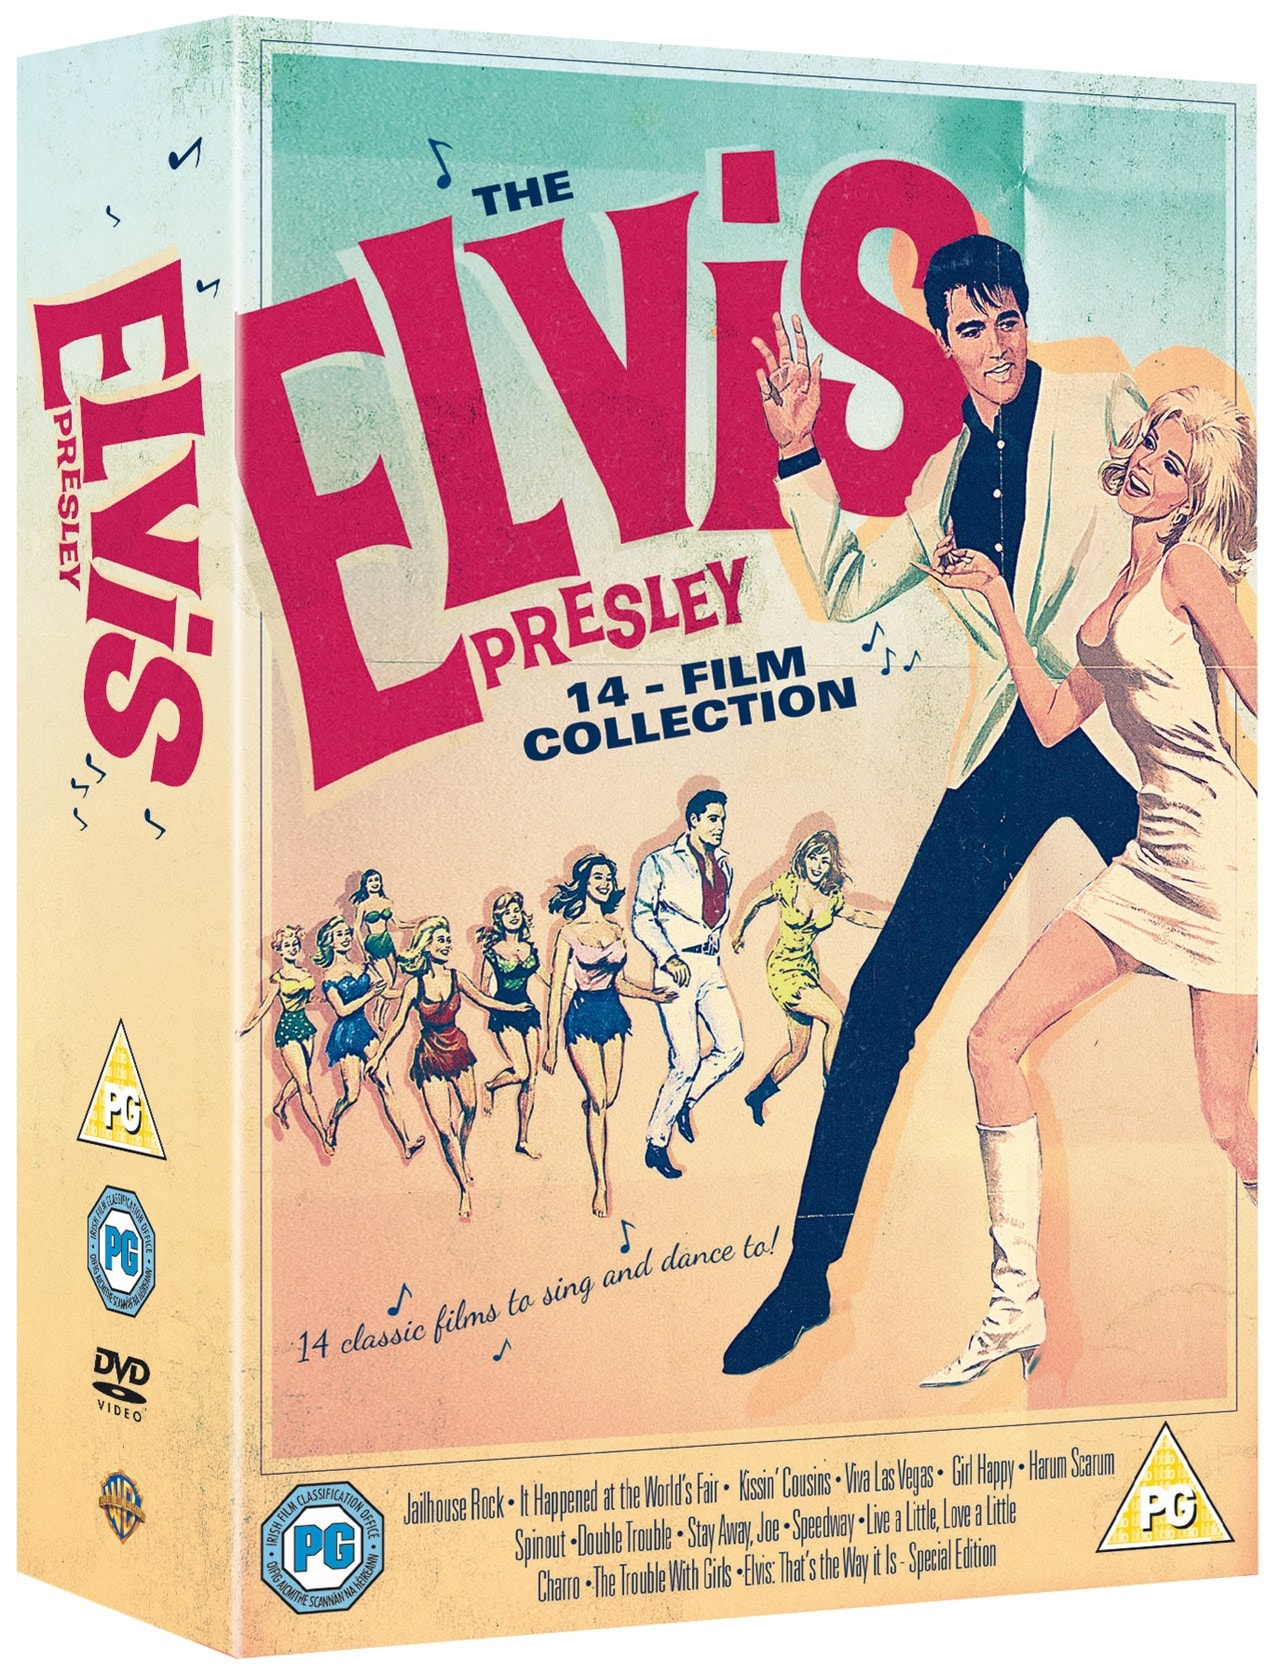 The Elvis Presley 14-film Collection - 2